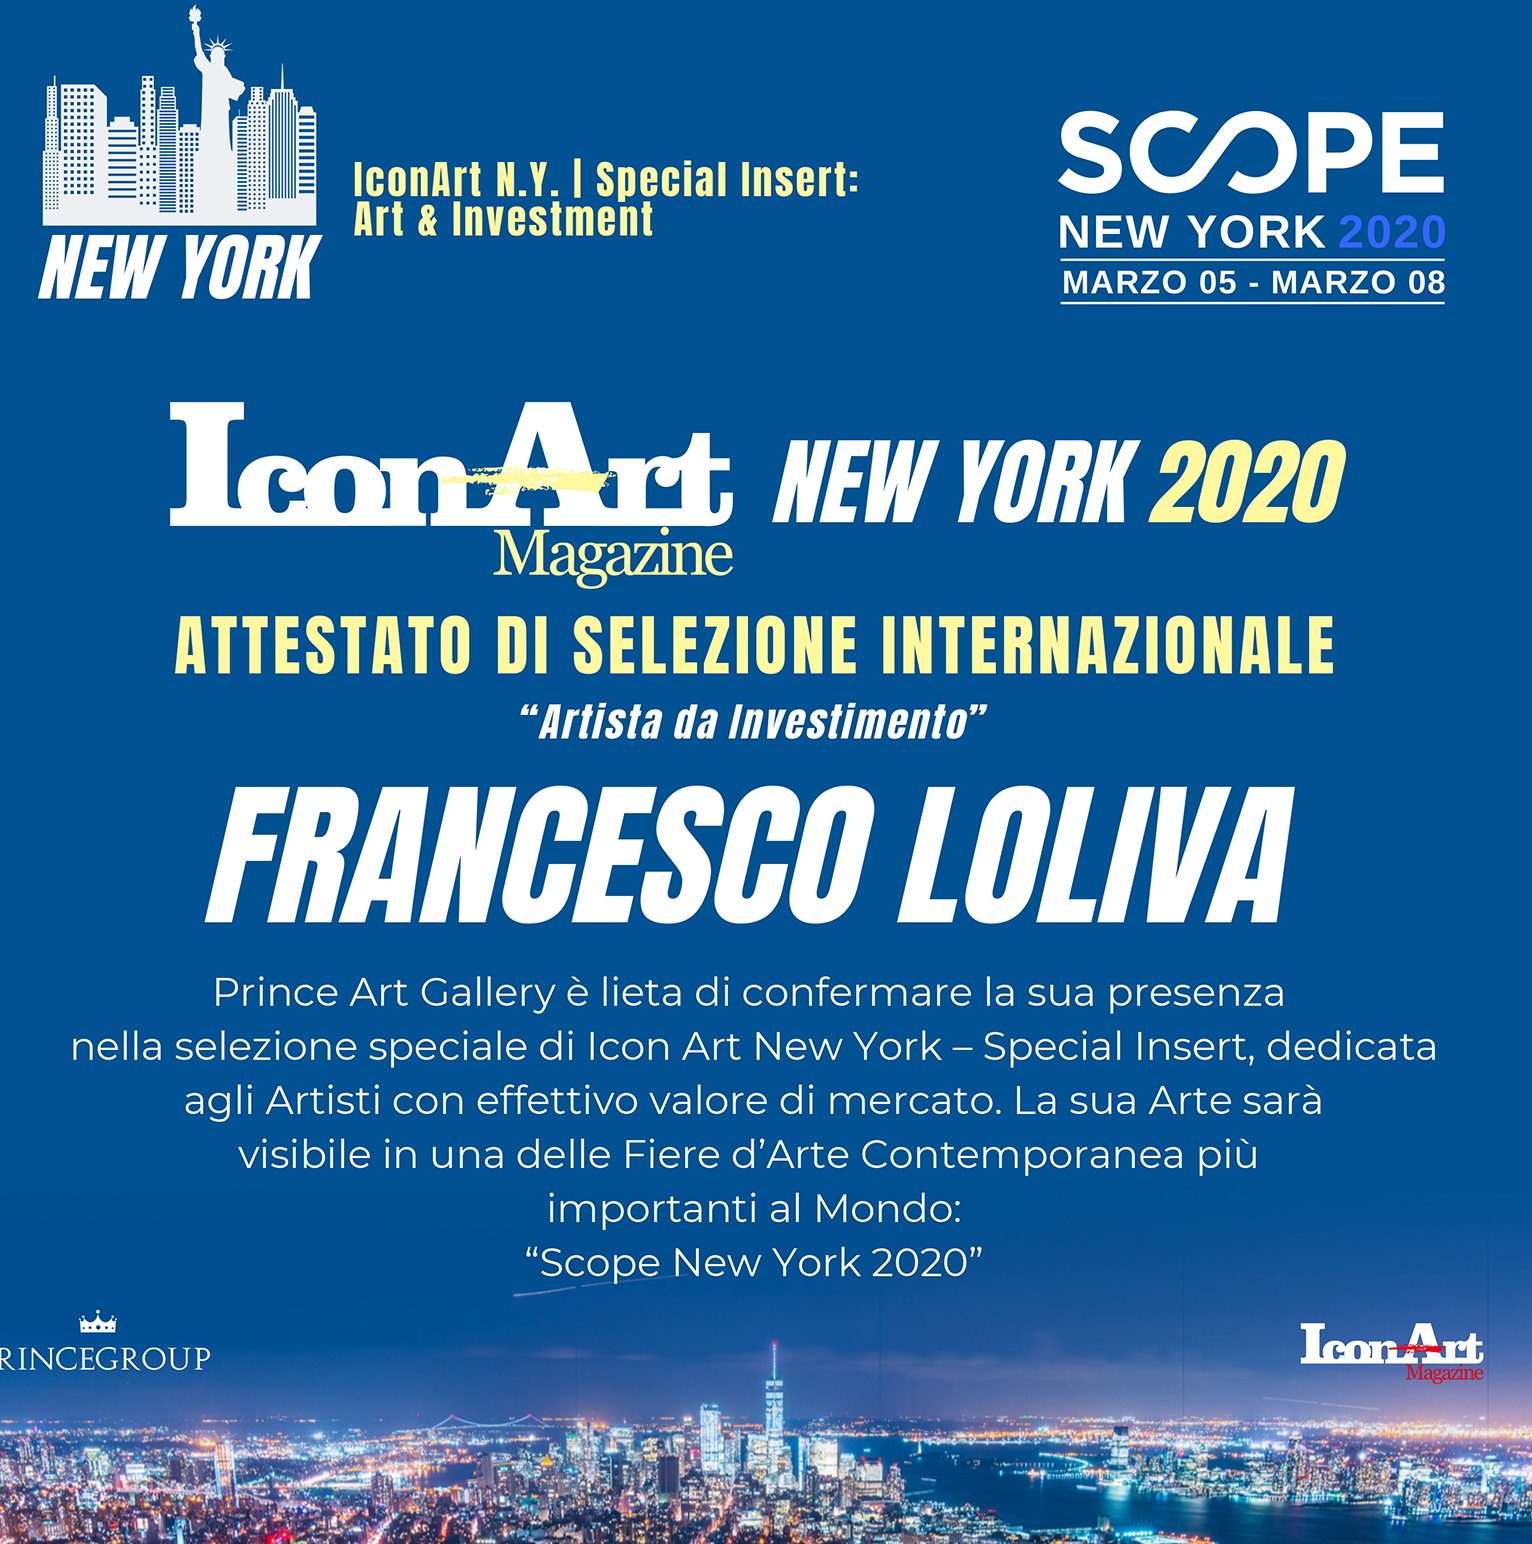 SCOPE ART NEW YORK 5-9 MARZO 2020